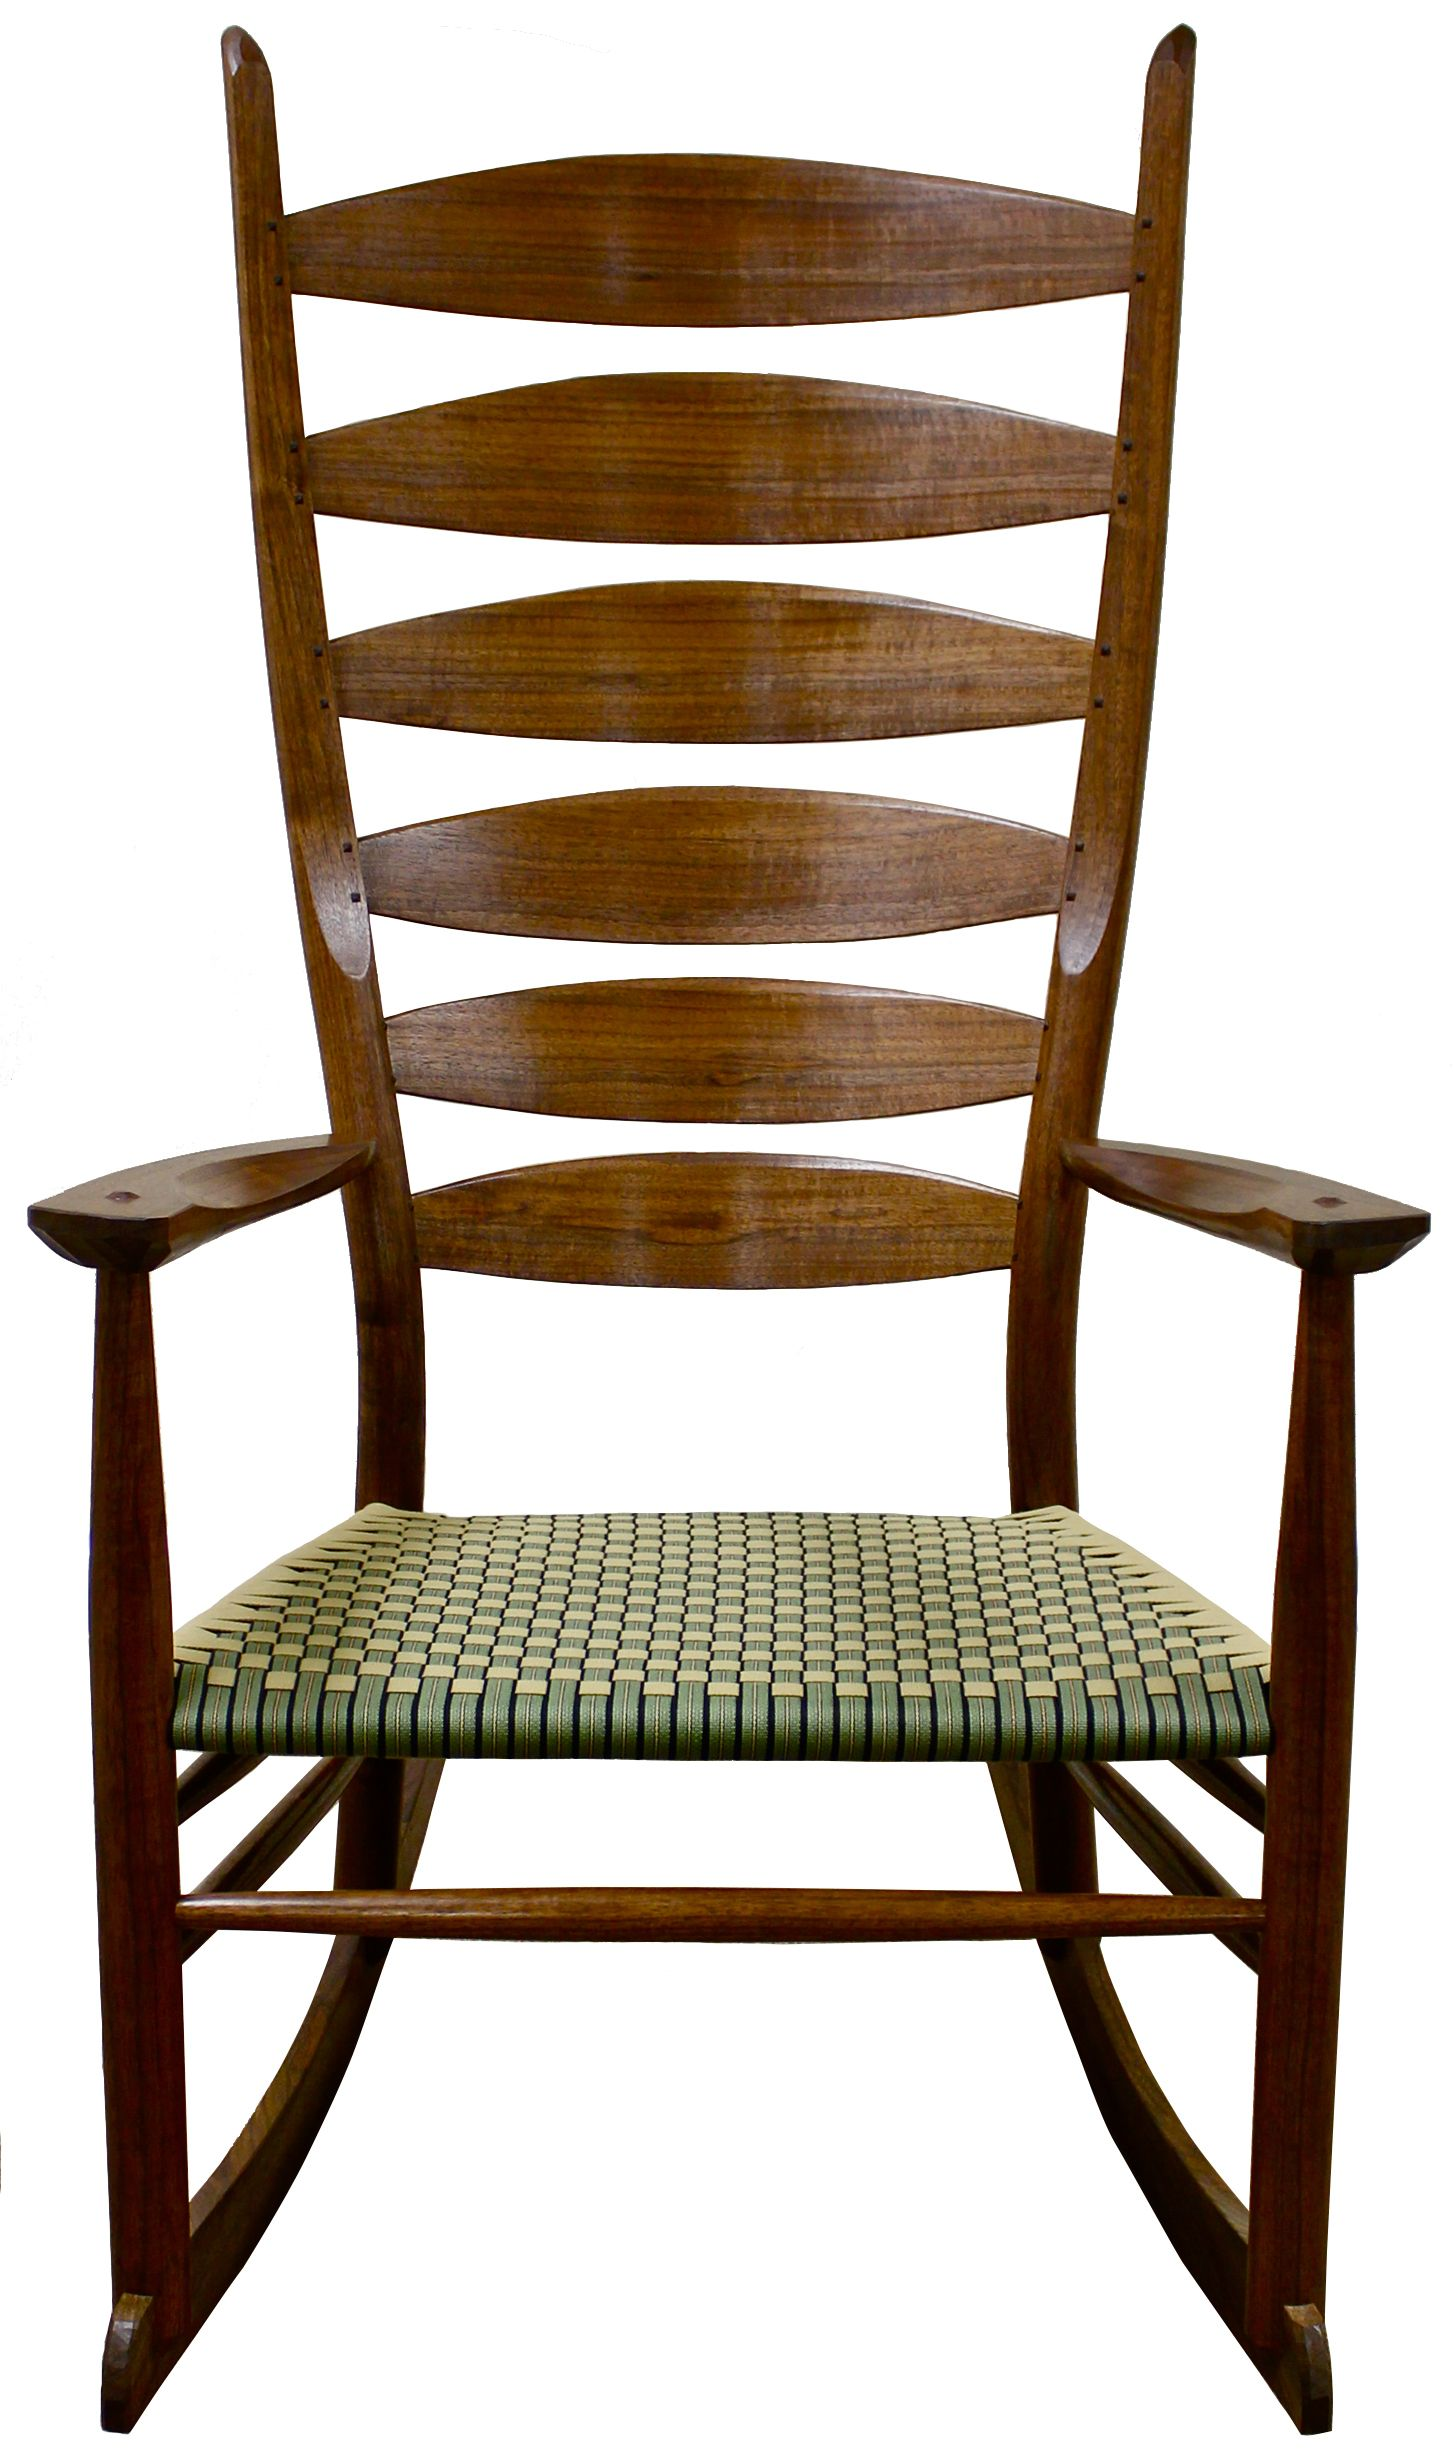 custom made boggs classic ladderback rocking chair by brian boggs